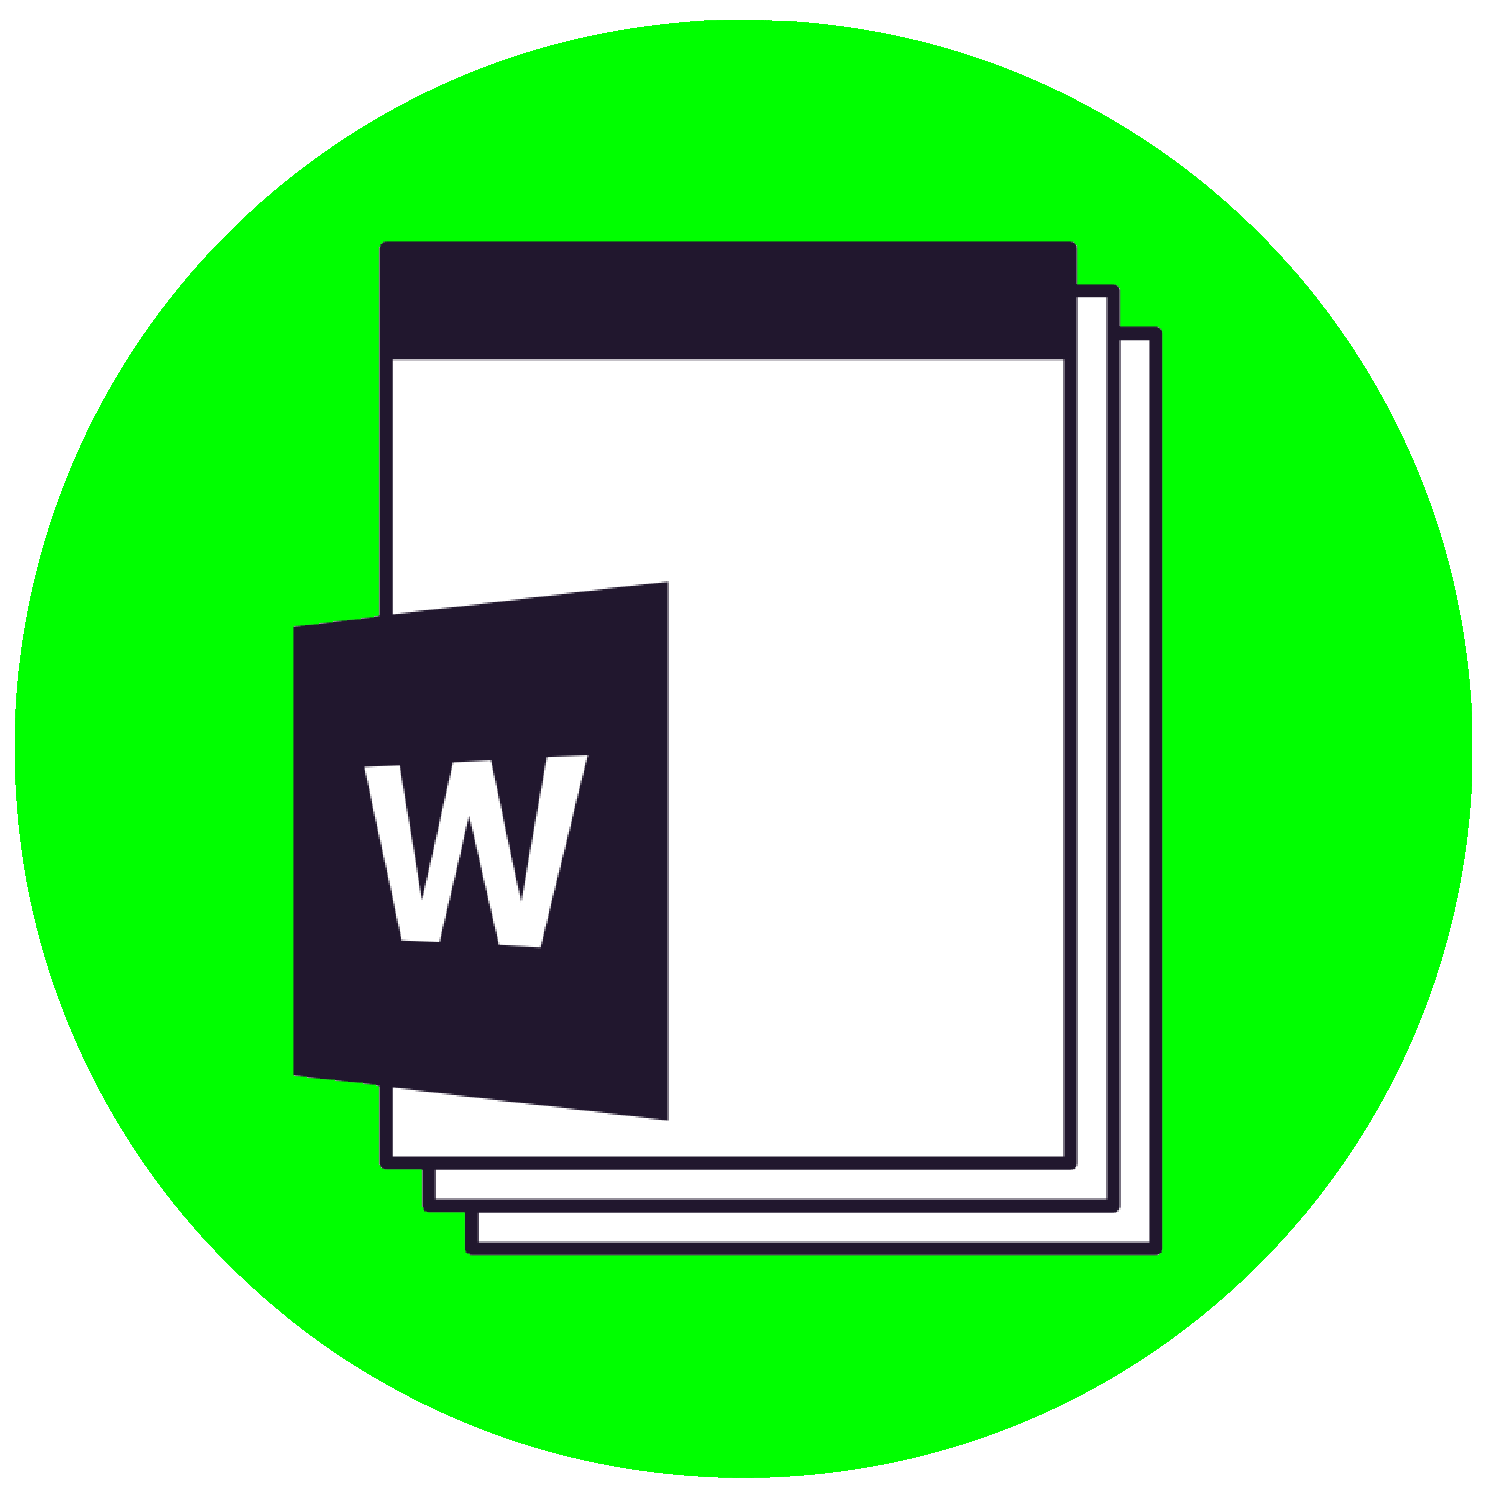 A decorative image of a Microsoft Word file